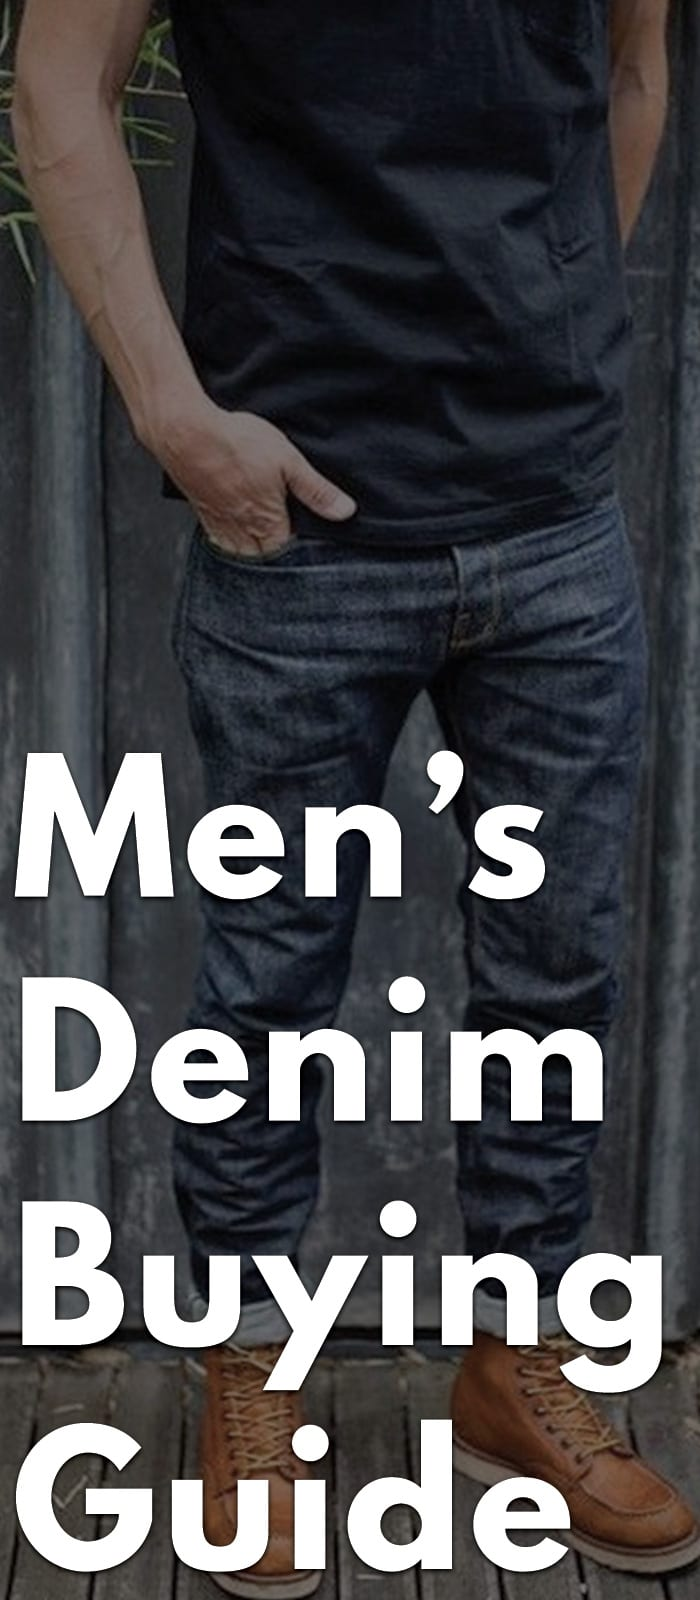 Men's-Denim-Buying-Guide